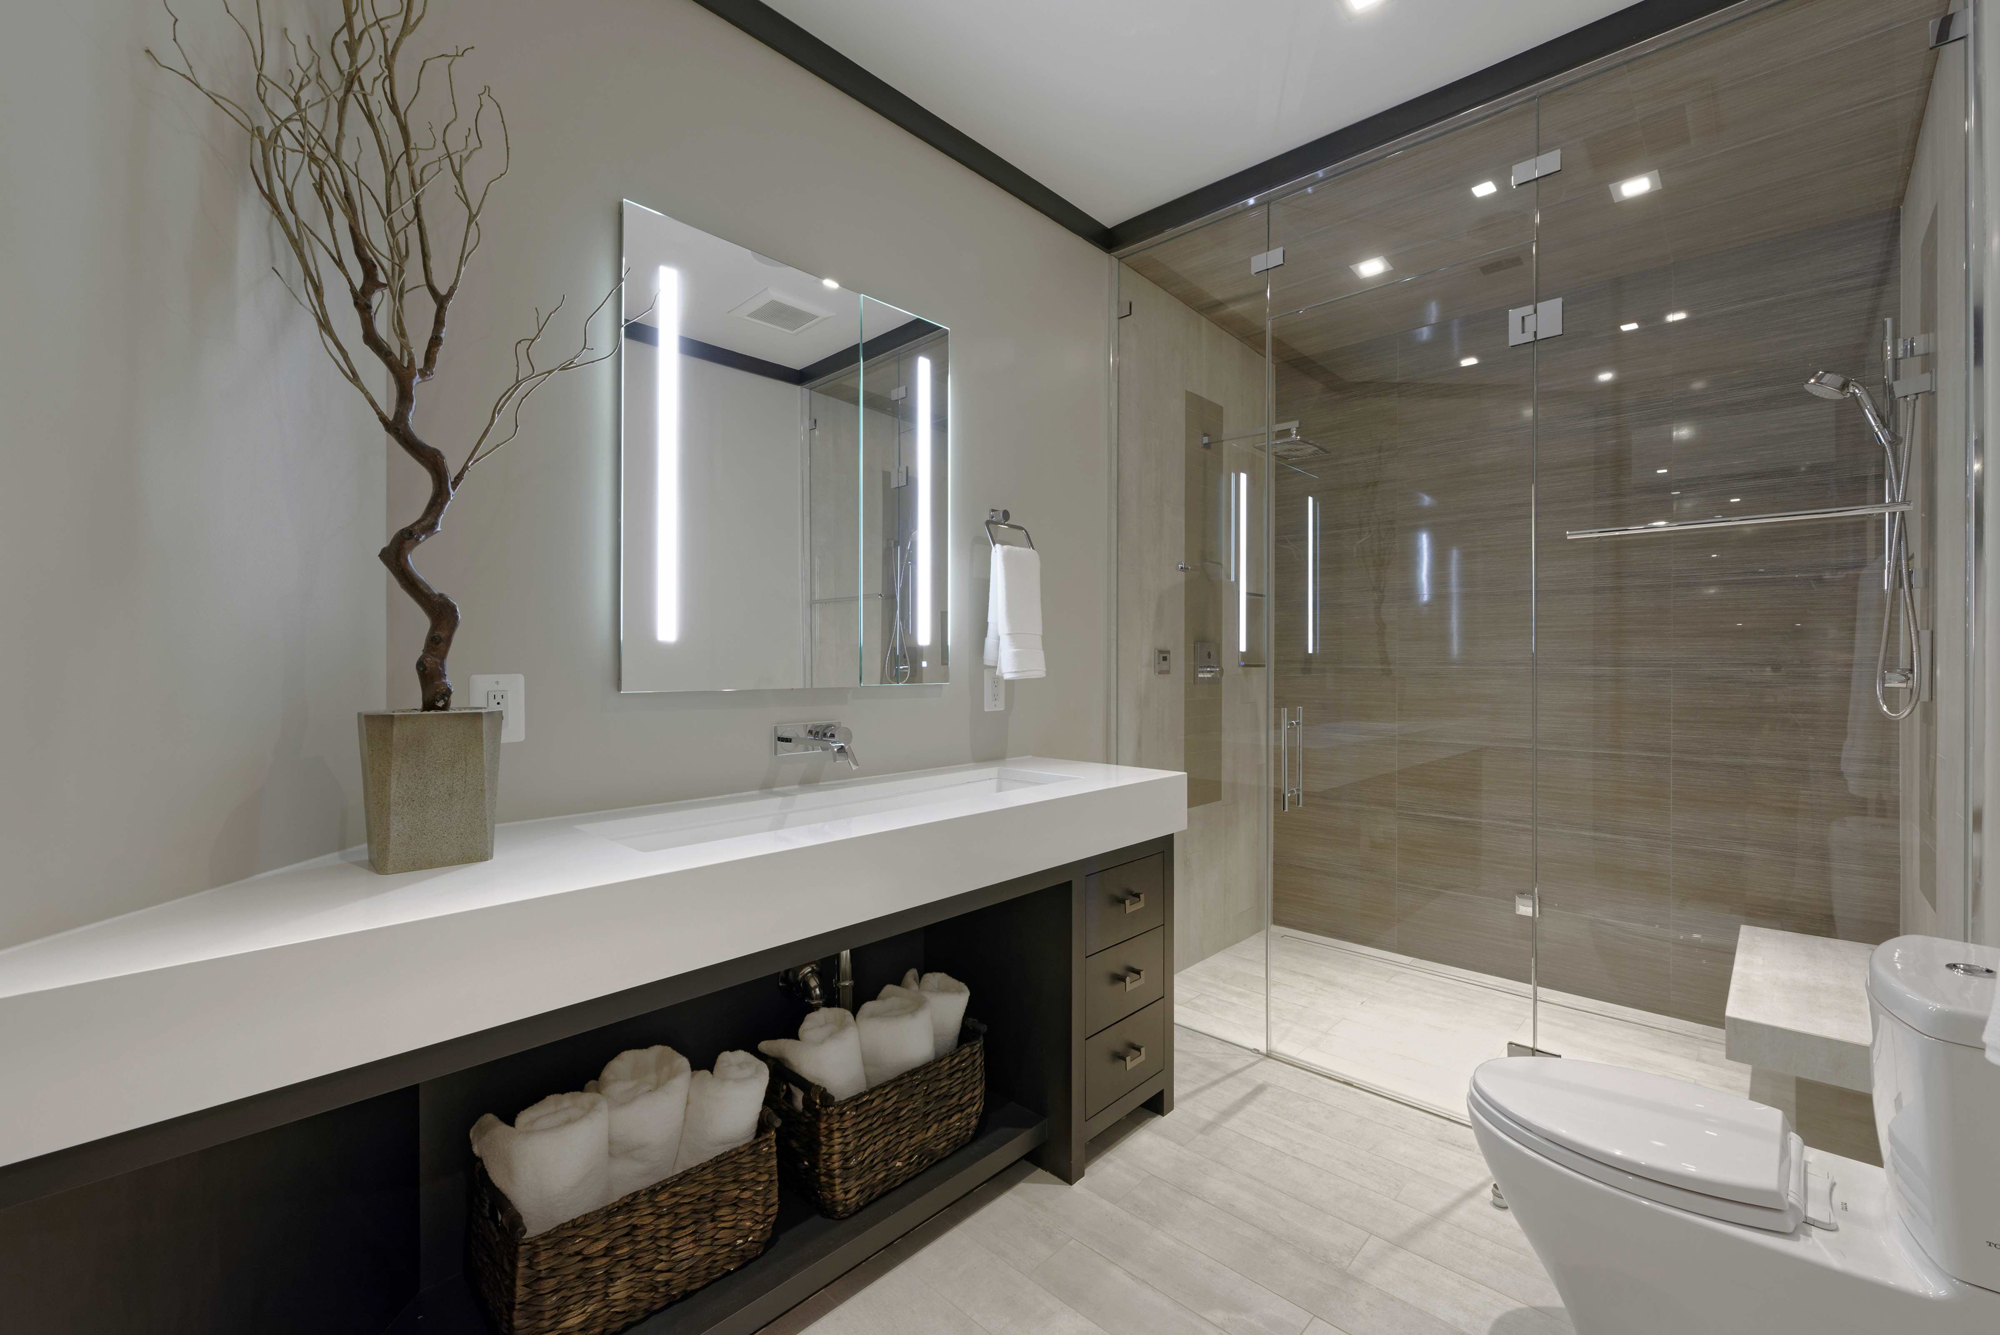 Luxury Modern Master Bathroom Designs Image Of Bathroom And Closet